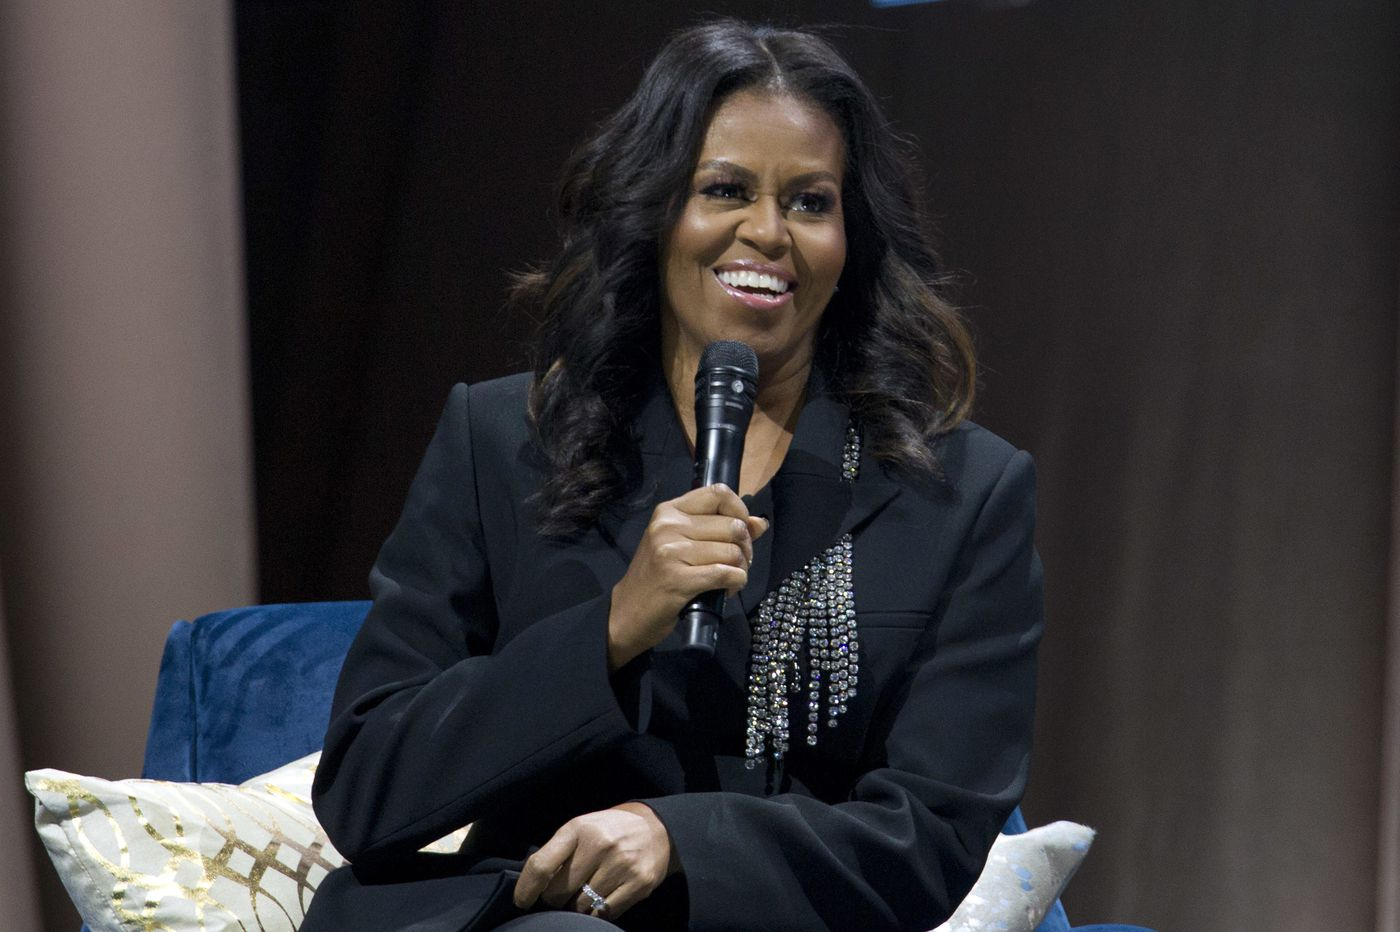 Women applaud Michelle Obama's decision to share her trauma over miscarriage